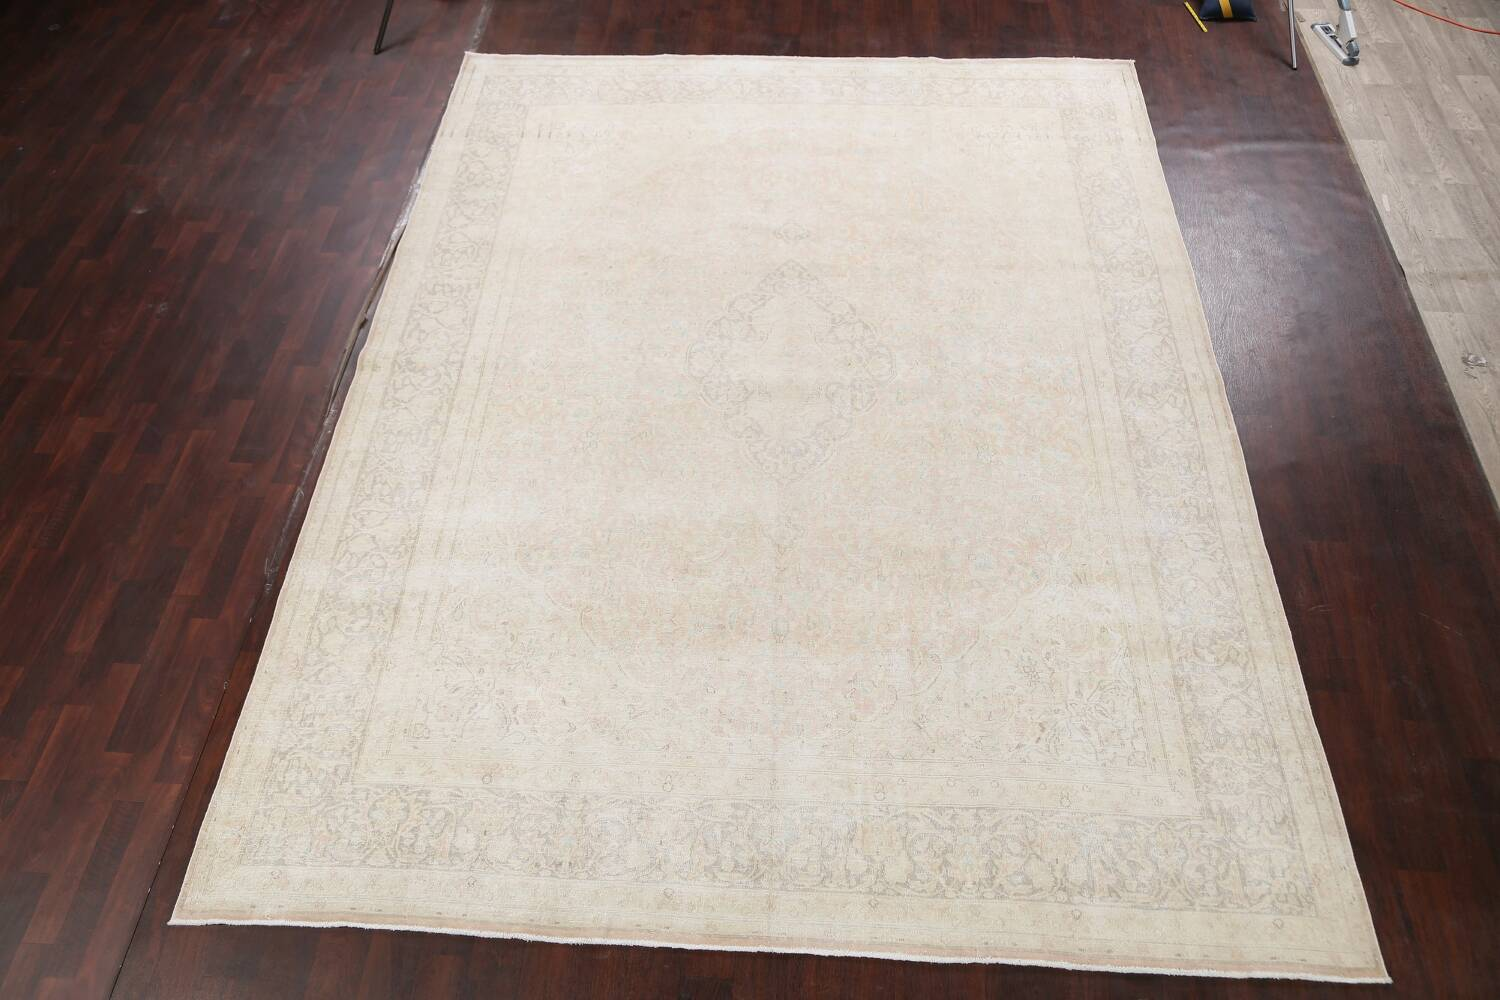 Antique Muted Distressed Kerman Persian Area Rug 10x12 image 2